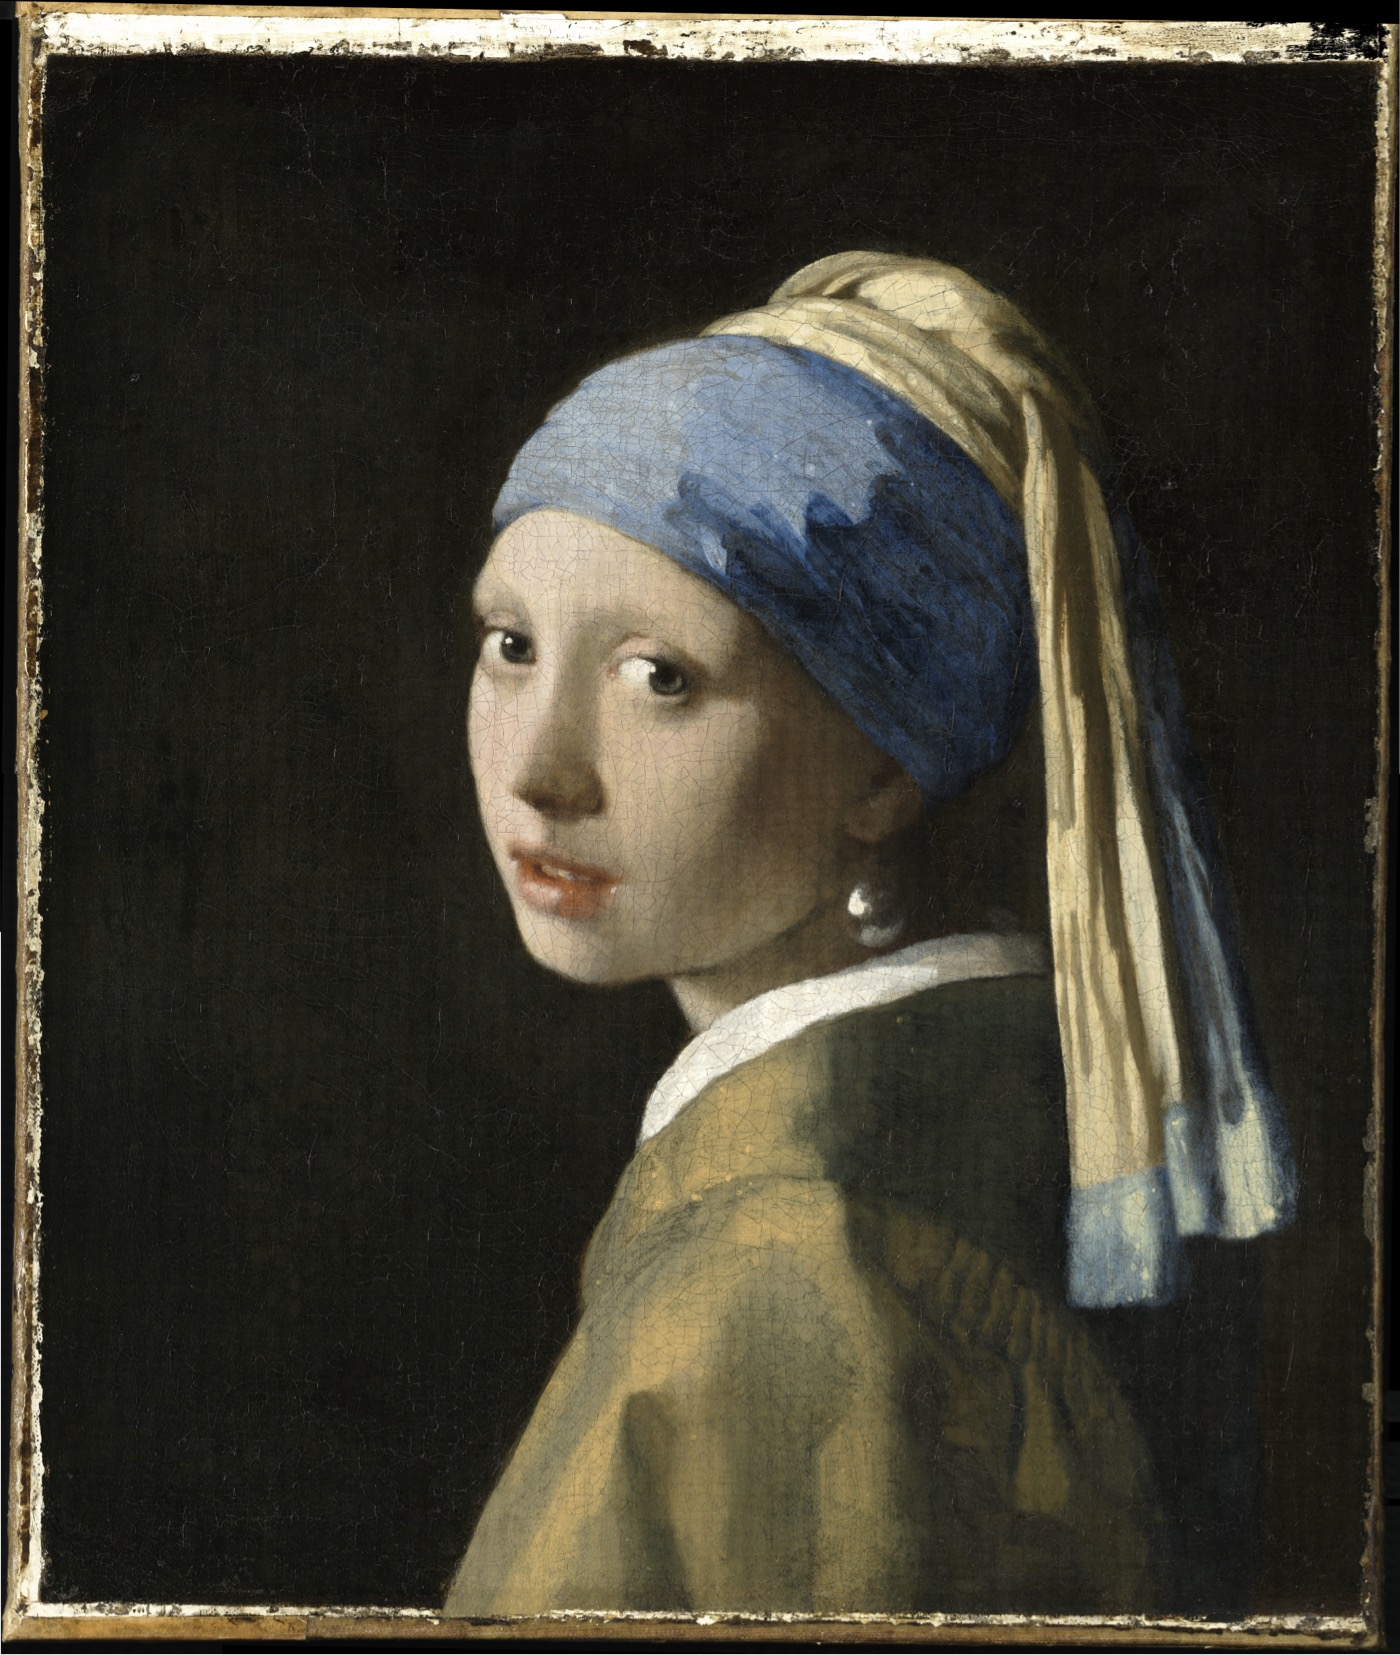 An Incredible 10-Gigapixel Scan of 'Girl With a Pearl Earring'